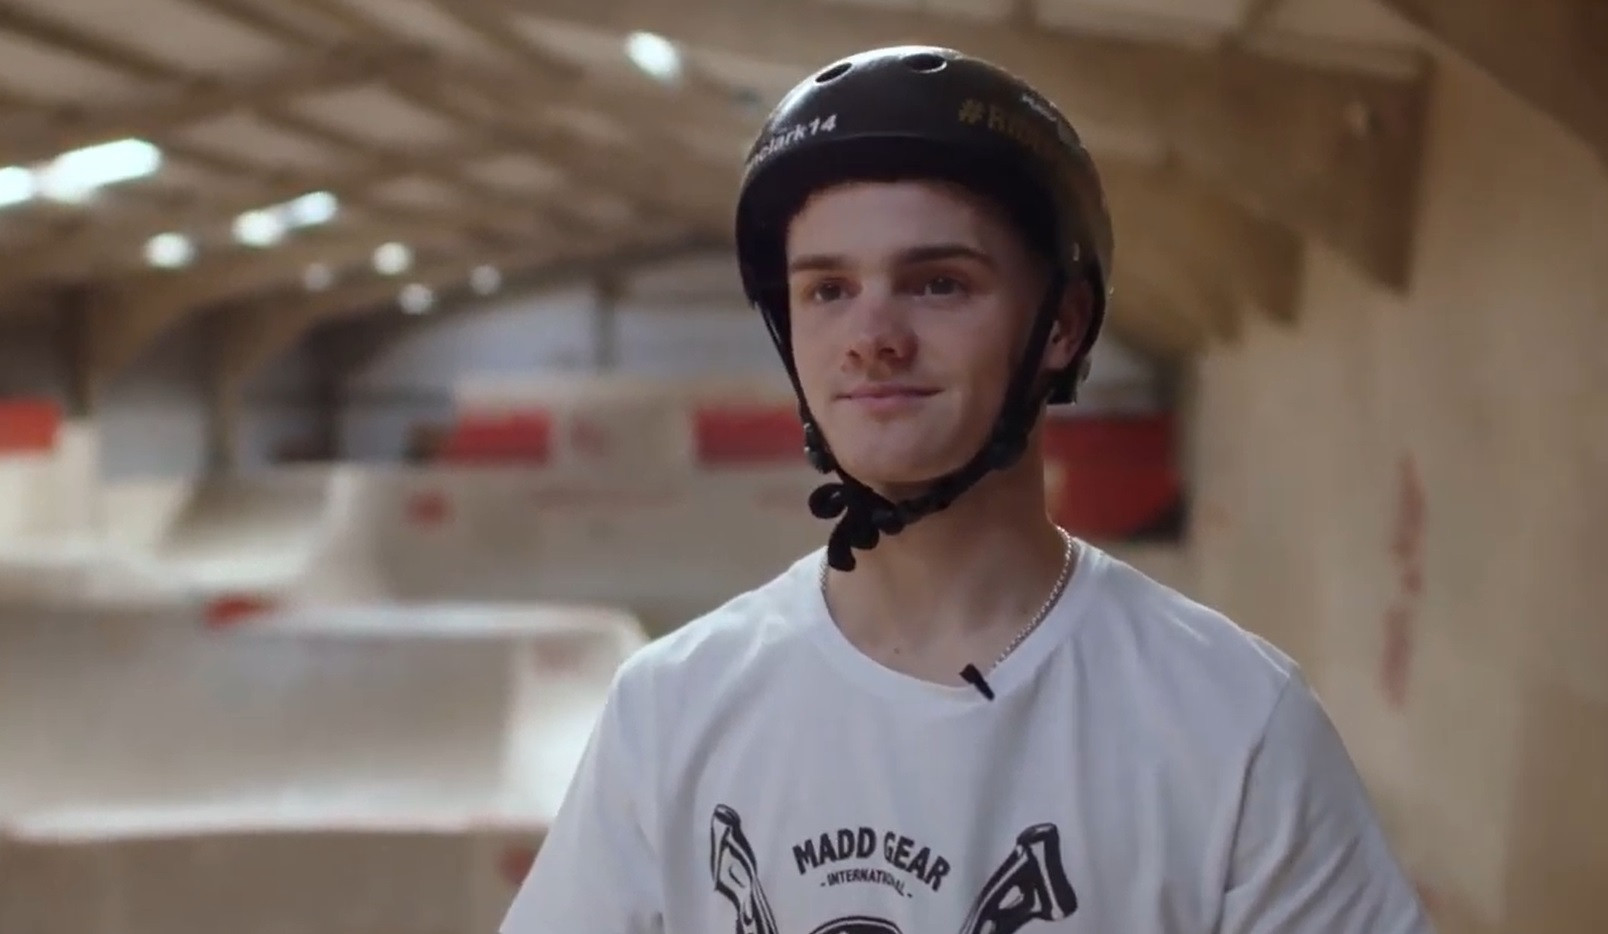 Britain claims two titles at World Skate's Scooter World Championships